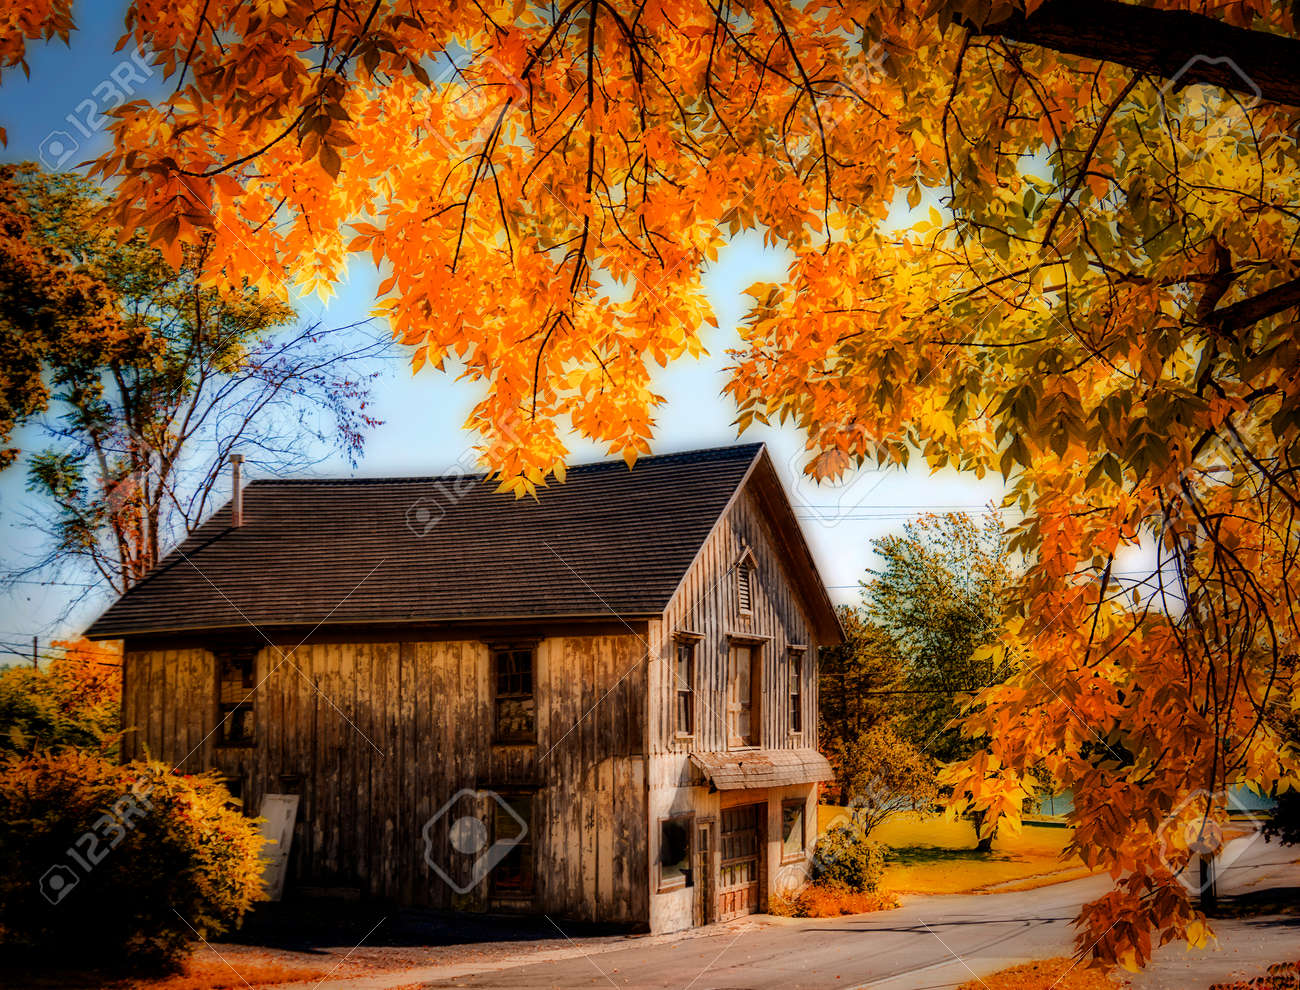 Photo of an old rustic barn framed by a tree with colorful orange